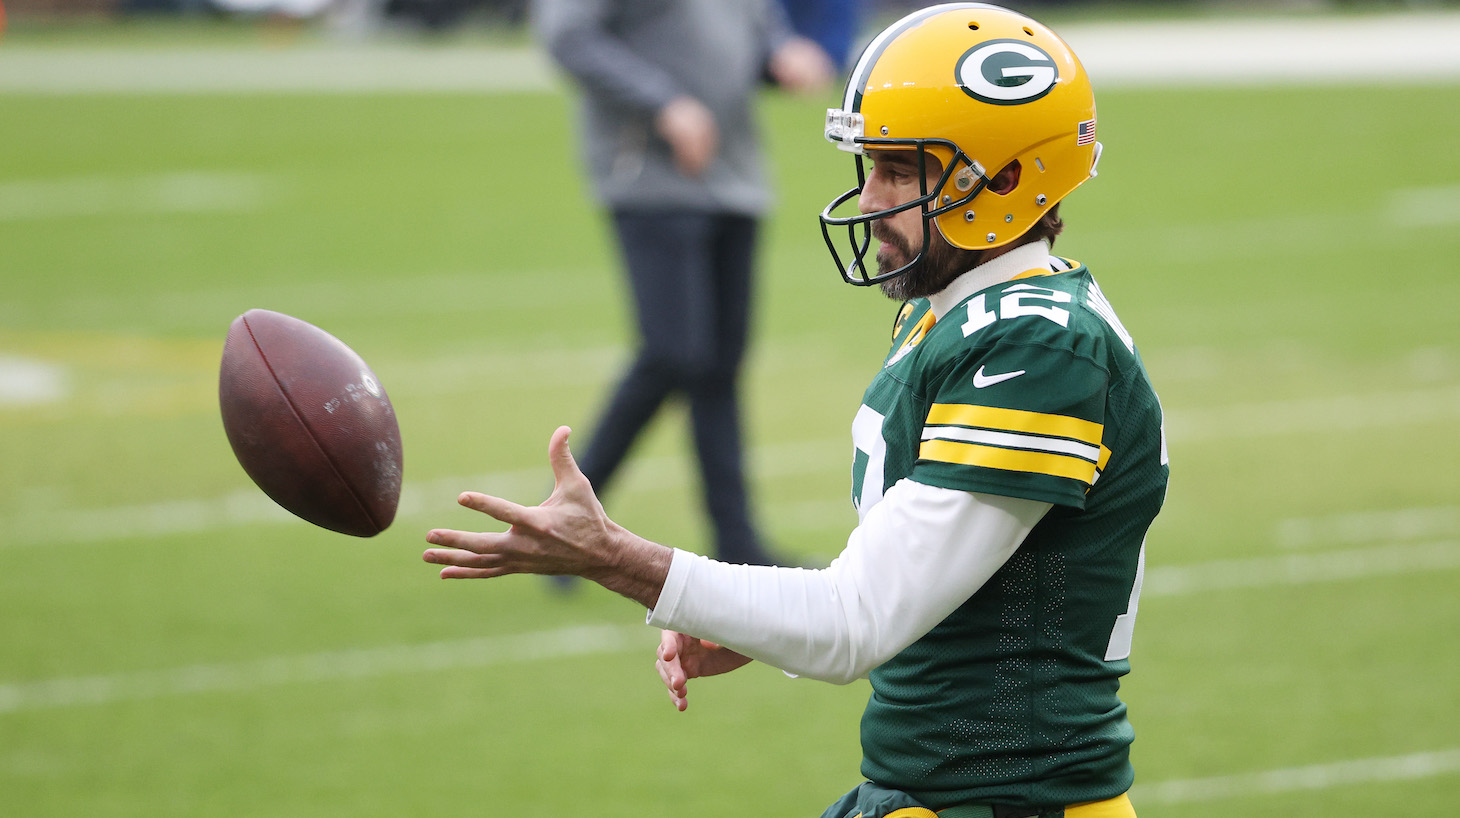 GREEN BAY, WISCONSIN - JANUARY 24: Aaron Rodgers #12 of the Green Bay Packers warms up prior to their NFC Championship game against the Tampa Bay Buccaneers at Lambeau Field on January 24, 2021 in Green Bay, Wisconsin. (Photo by Dylan Buell/Getty Images)